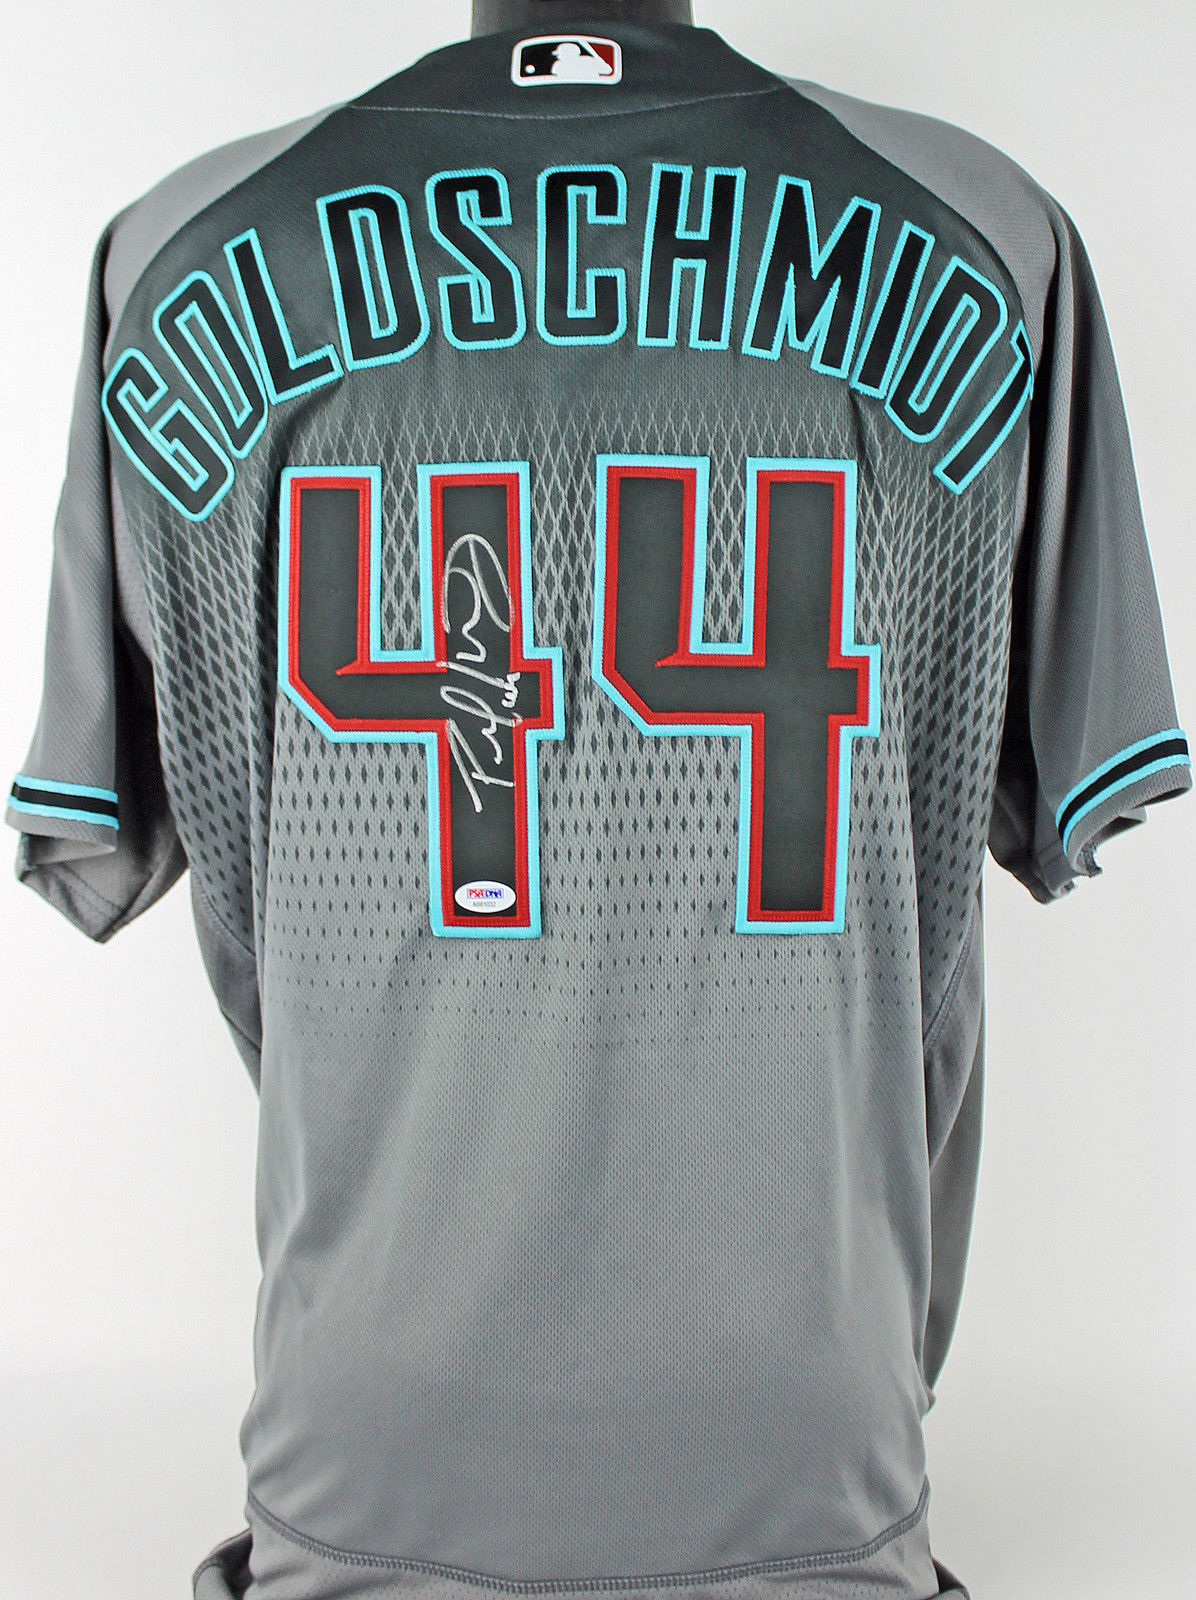 huge selection of db556 941ba denmark paul goldschmidt jersey 43c30 59f8c